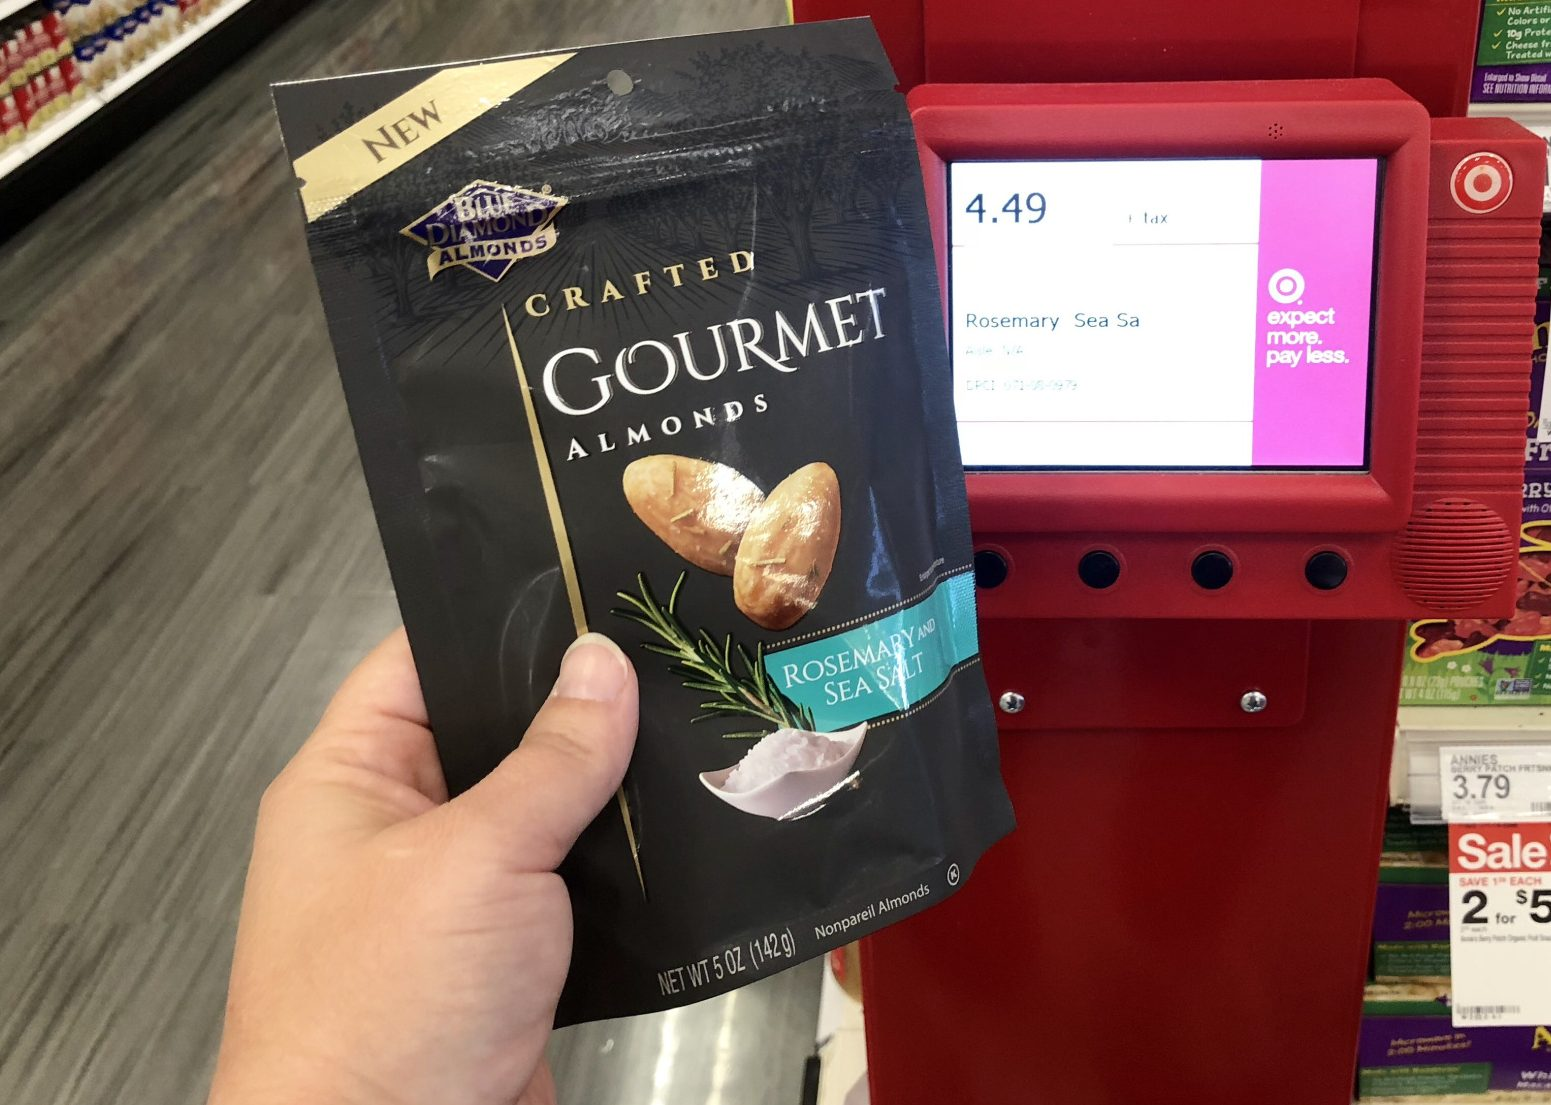 blue diamond gourmet almonds - Scanning the deal at Target